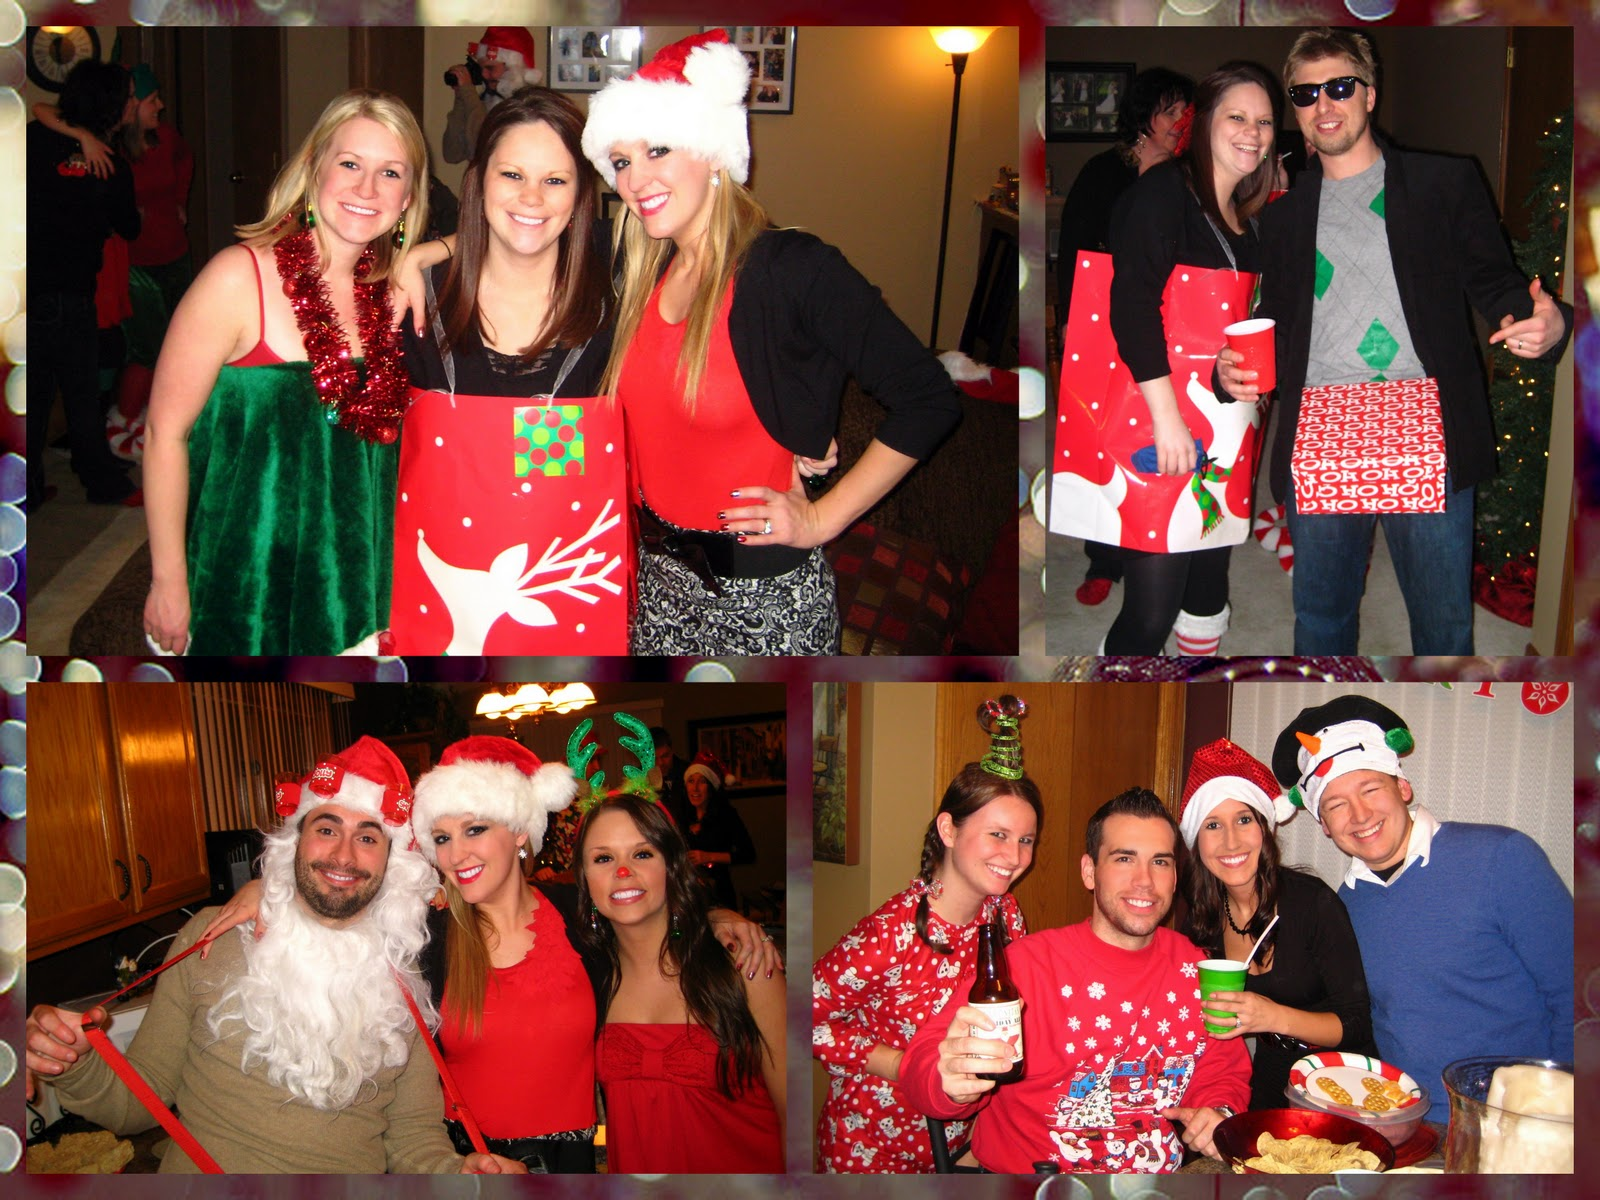 Dress up xmas party - Christmas Party 2011